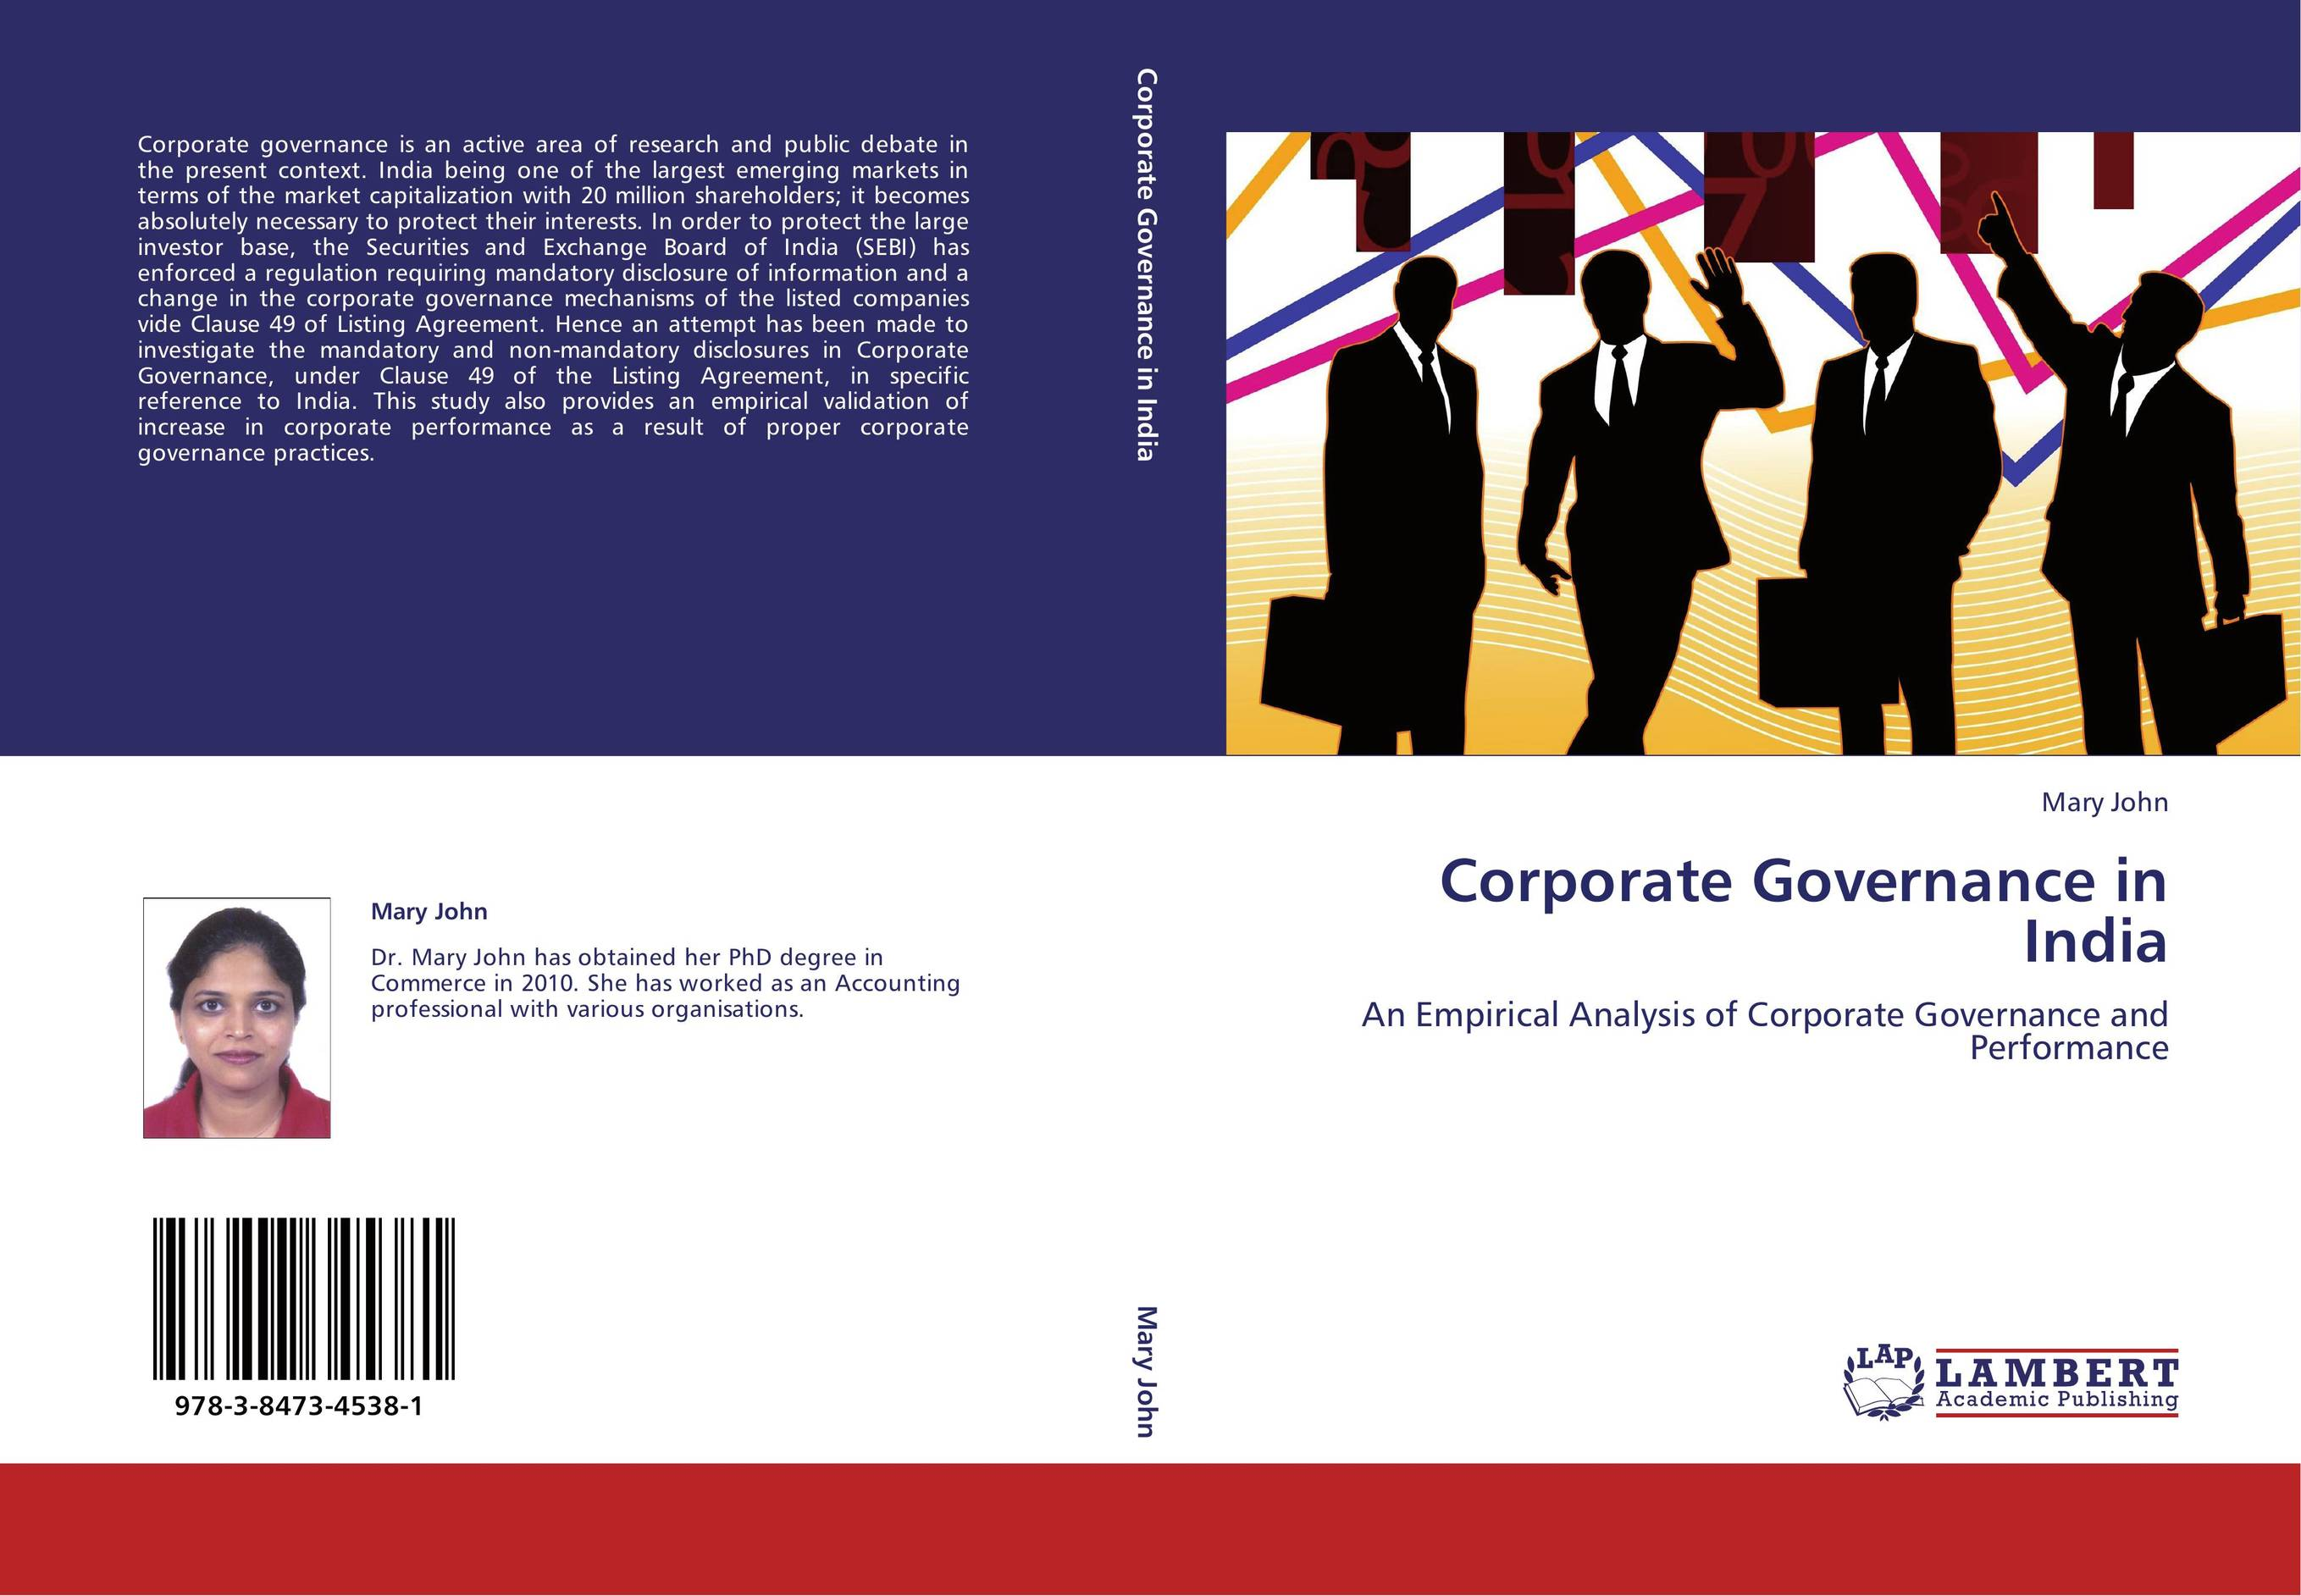 corporate governance in indian banks thesis Thesis best interests of our children an empirical study on corporate governance in indian banking master careers in global investment banking make an impression search the deadly effect of smoking funded phd projects, programs & scholarships in corporate governance.